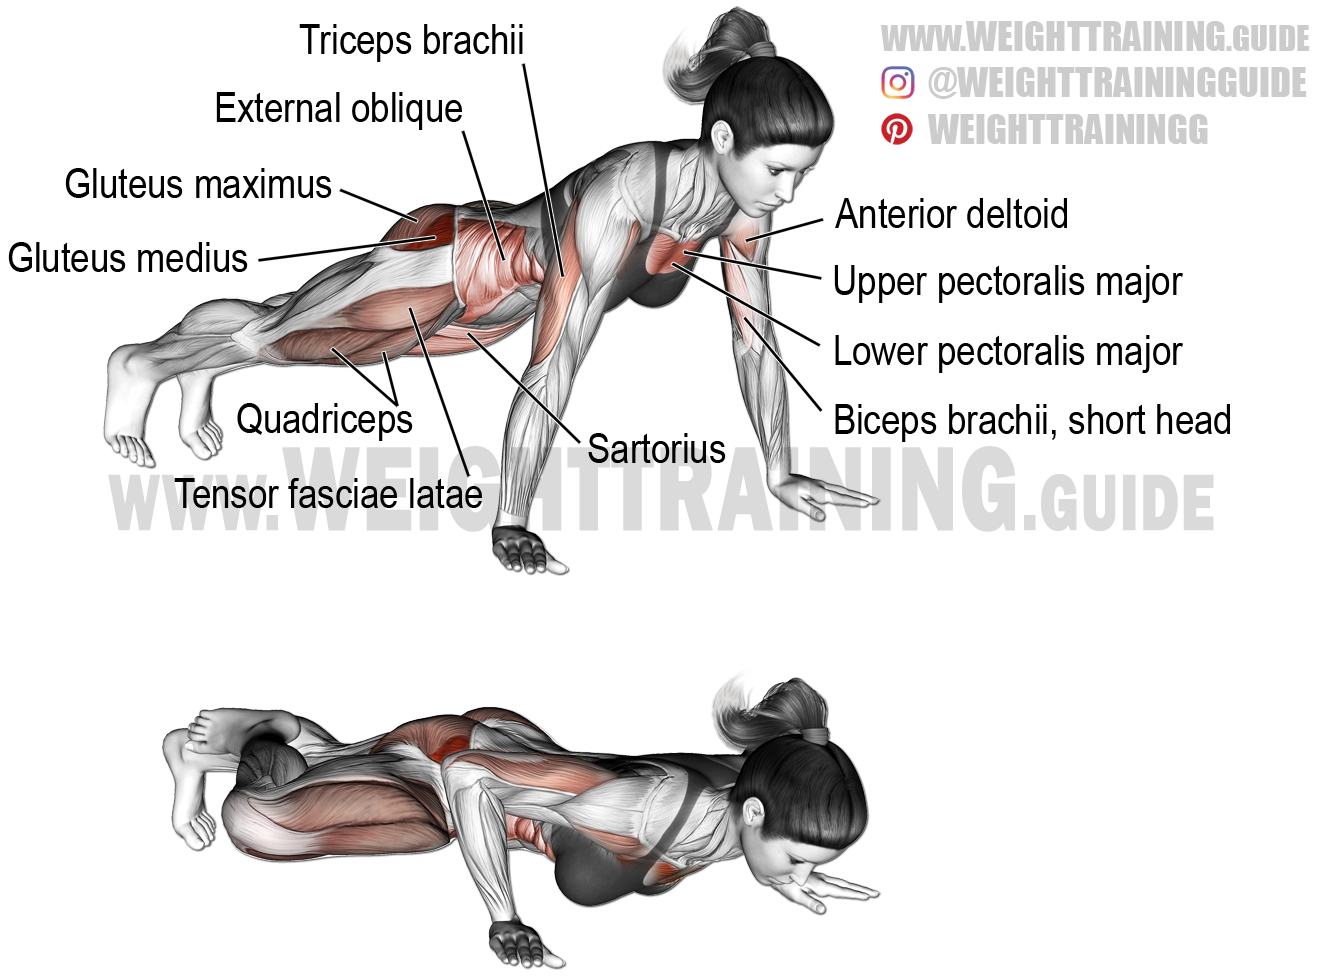 Spiderman push-up exercise instructions and video